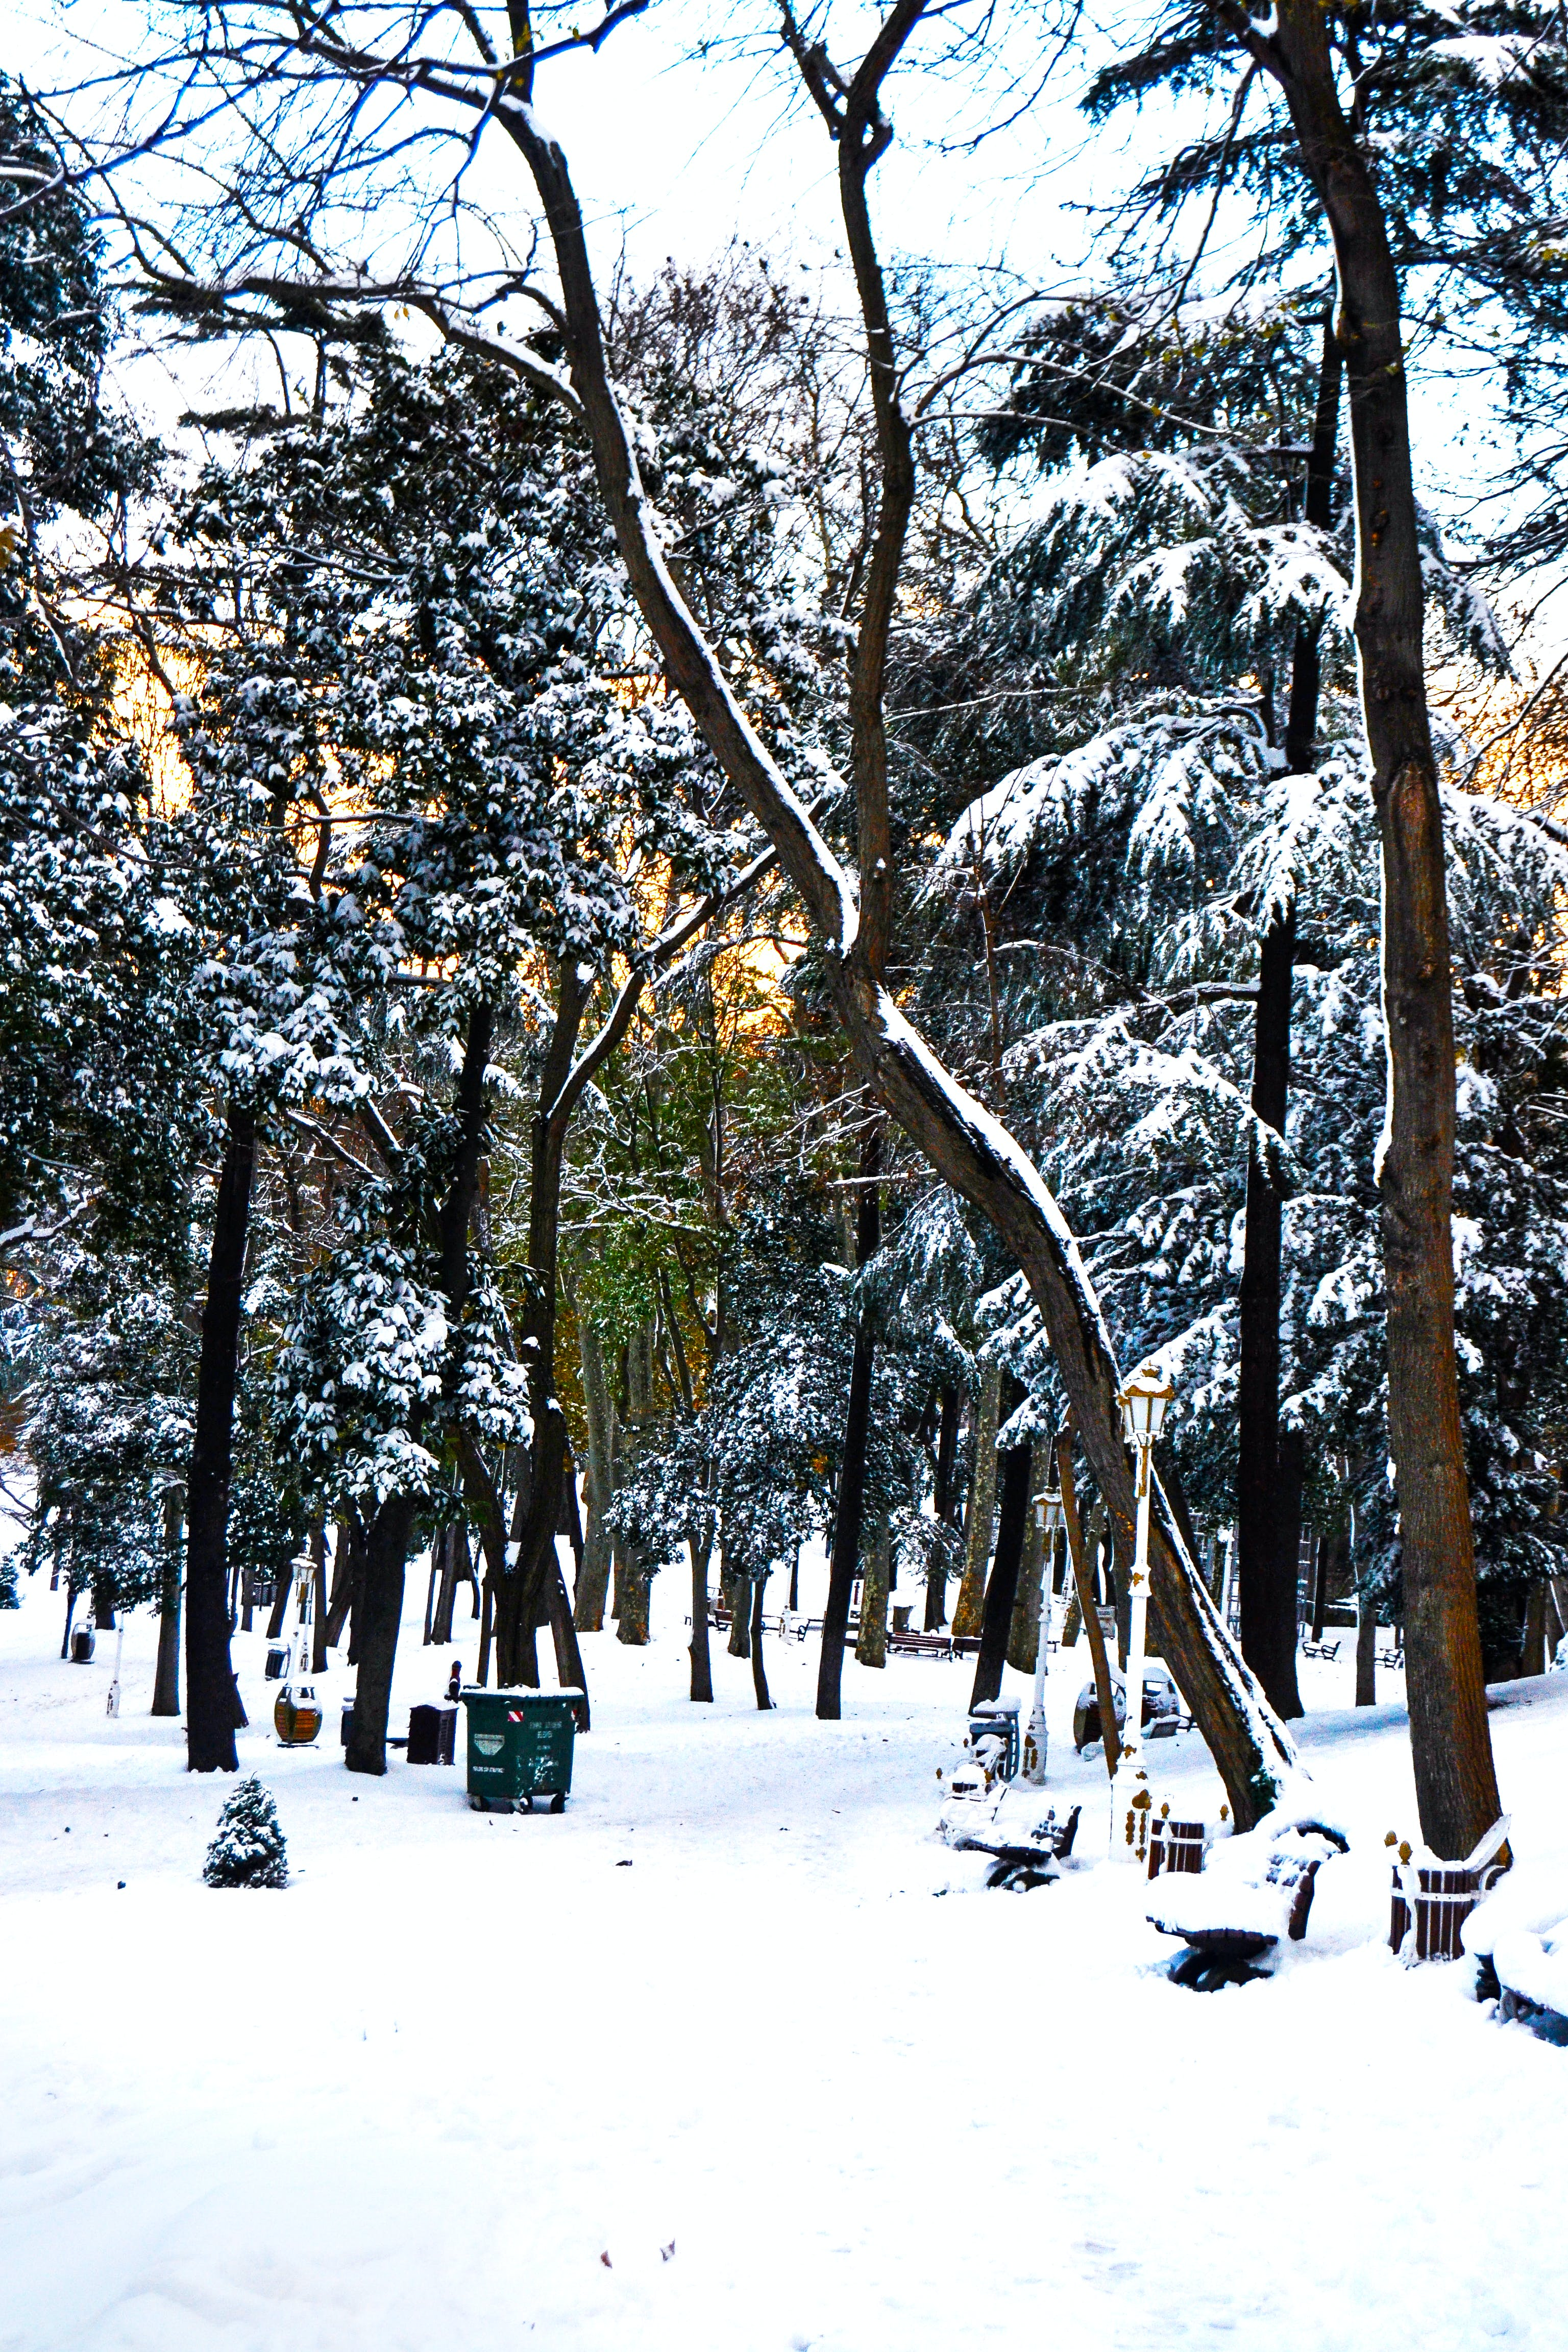 Free stock photo of #forest #color #snowy, #snow #white